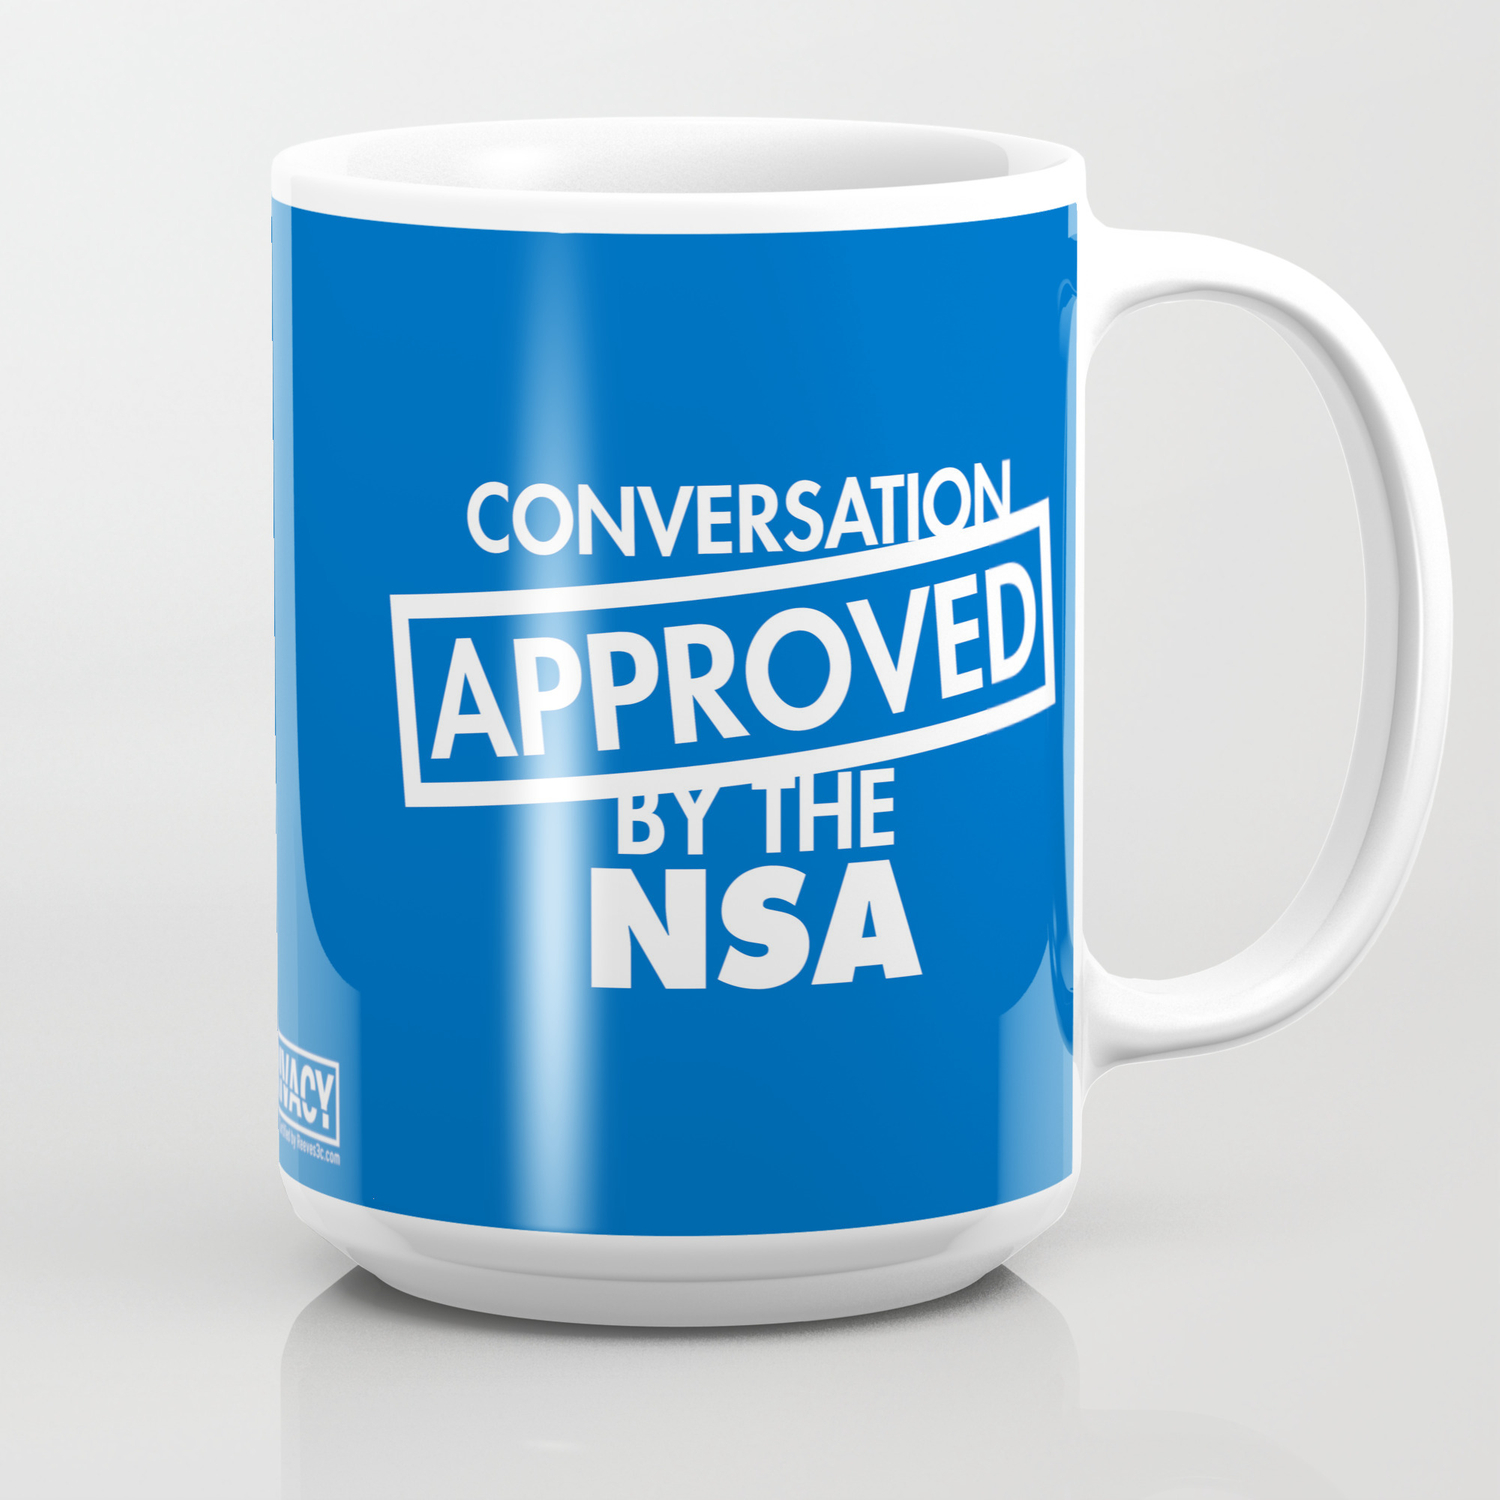 Nsa Reeves3cSociety6 Mug Conversation Coffee By Approved The ikZPXTuwOl